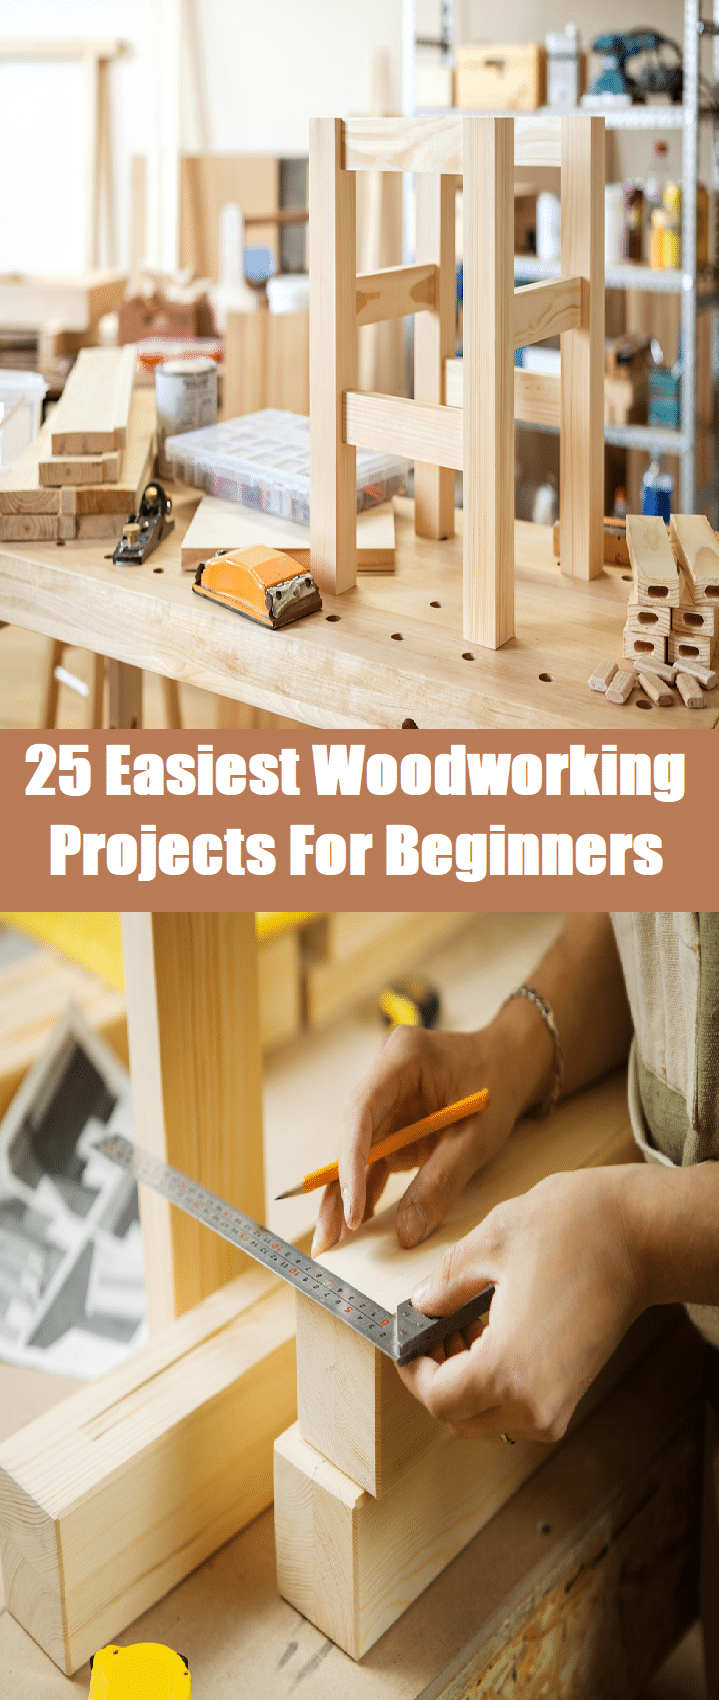 25 easiest woodworking projects for beginners | diy